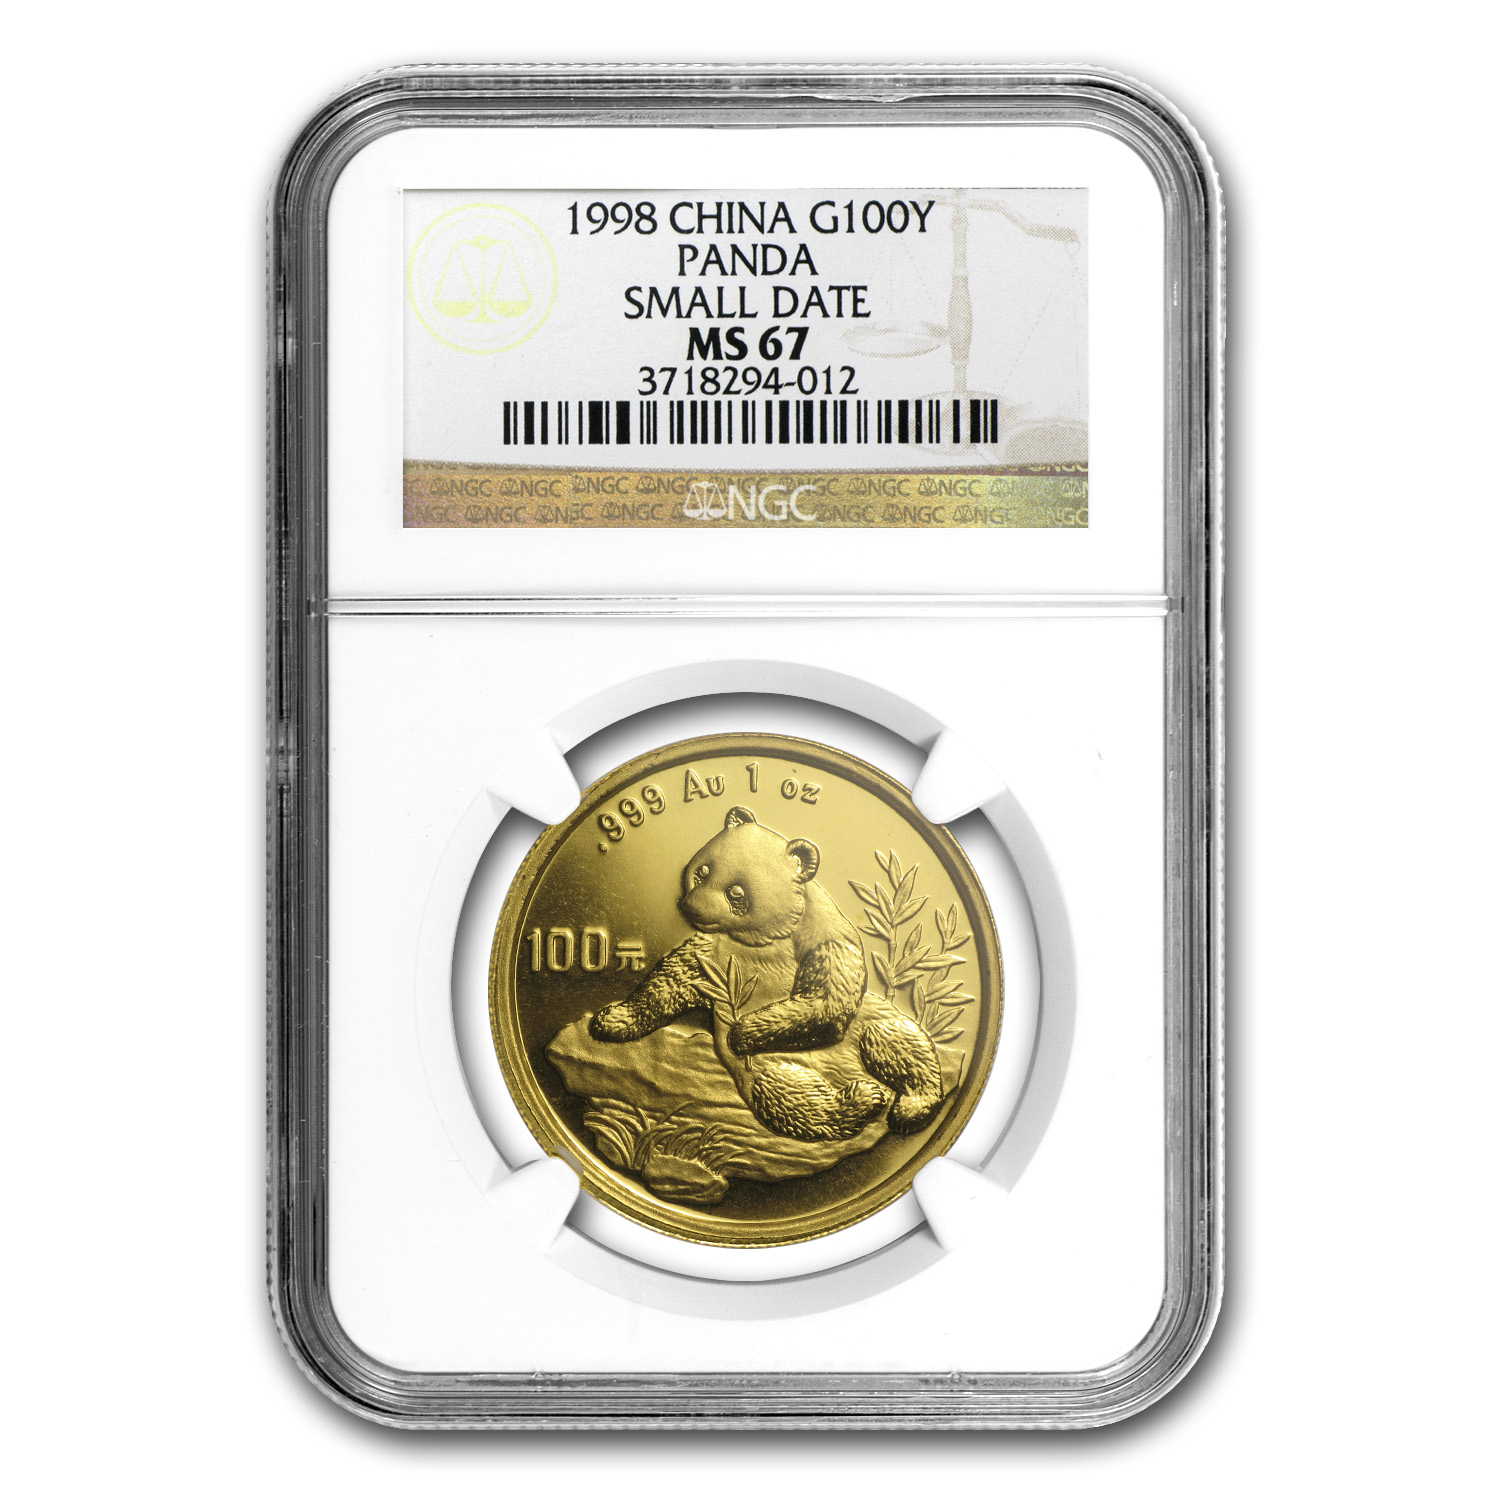 1998 China 1 oz Gold Panda Small Date MS-67 NGC